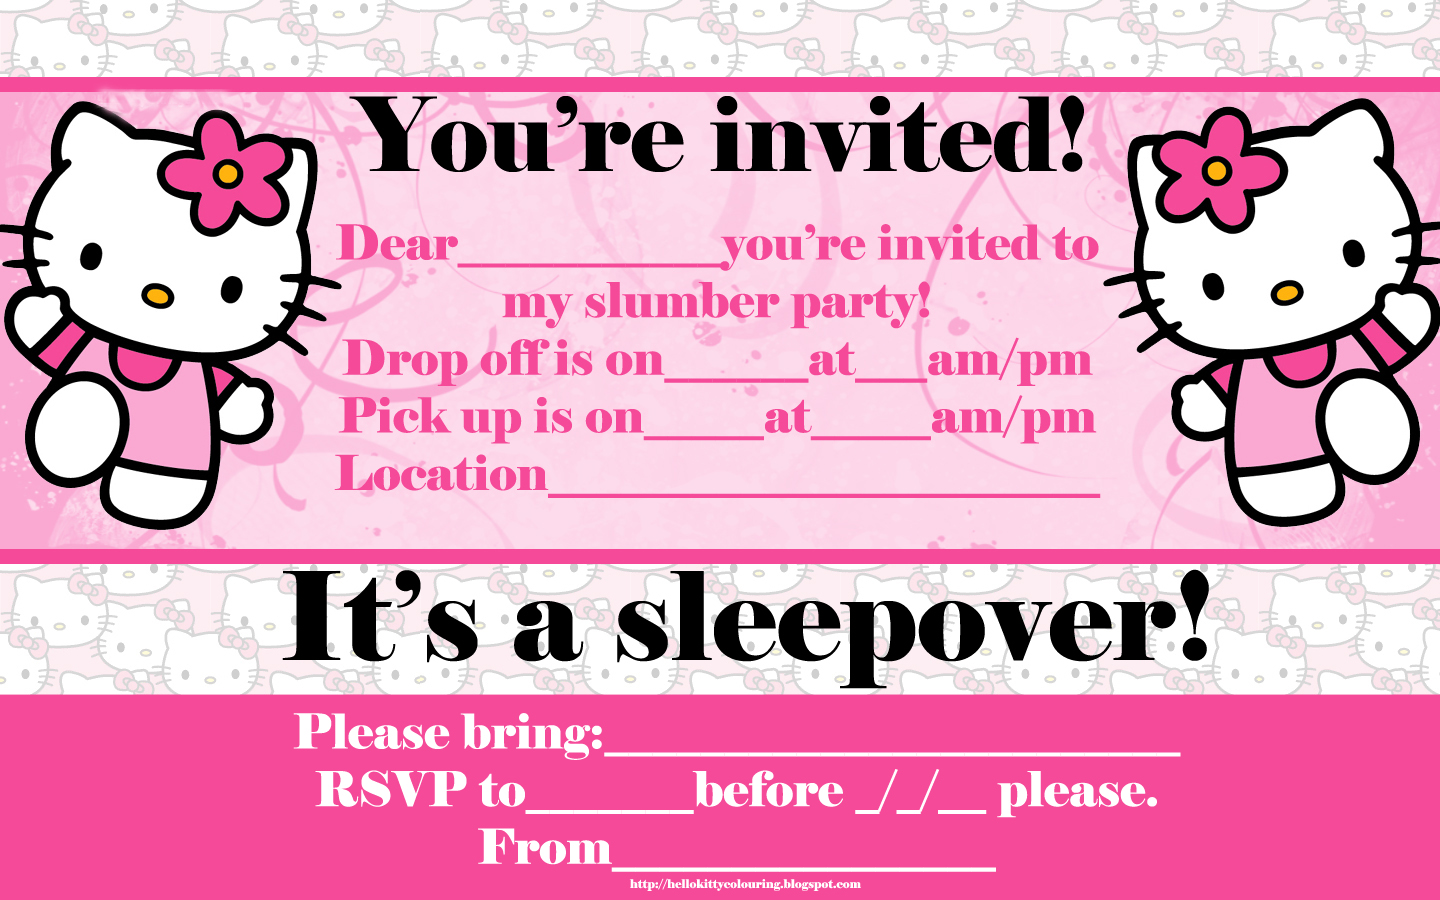 Free printable hello kitty slumber party invitation invitations for sleepover party invitation templates monicamarmolfo Image collections